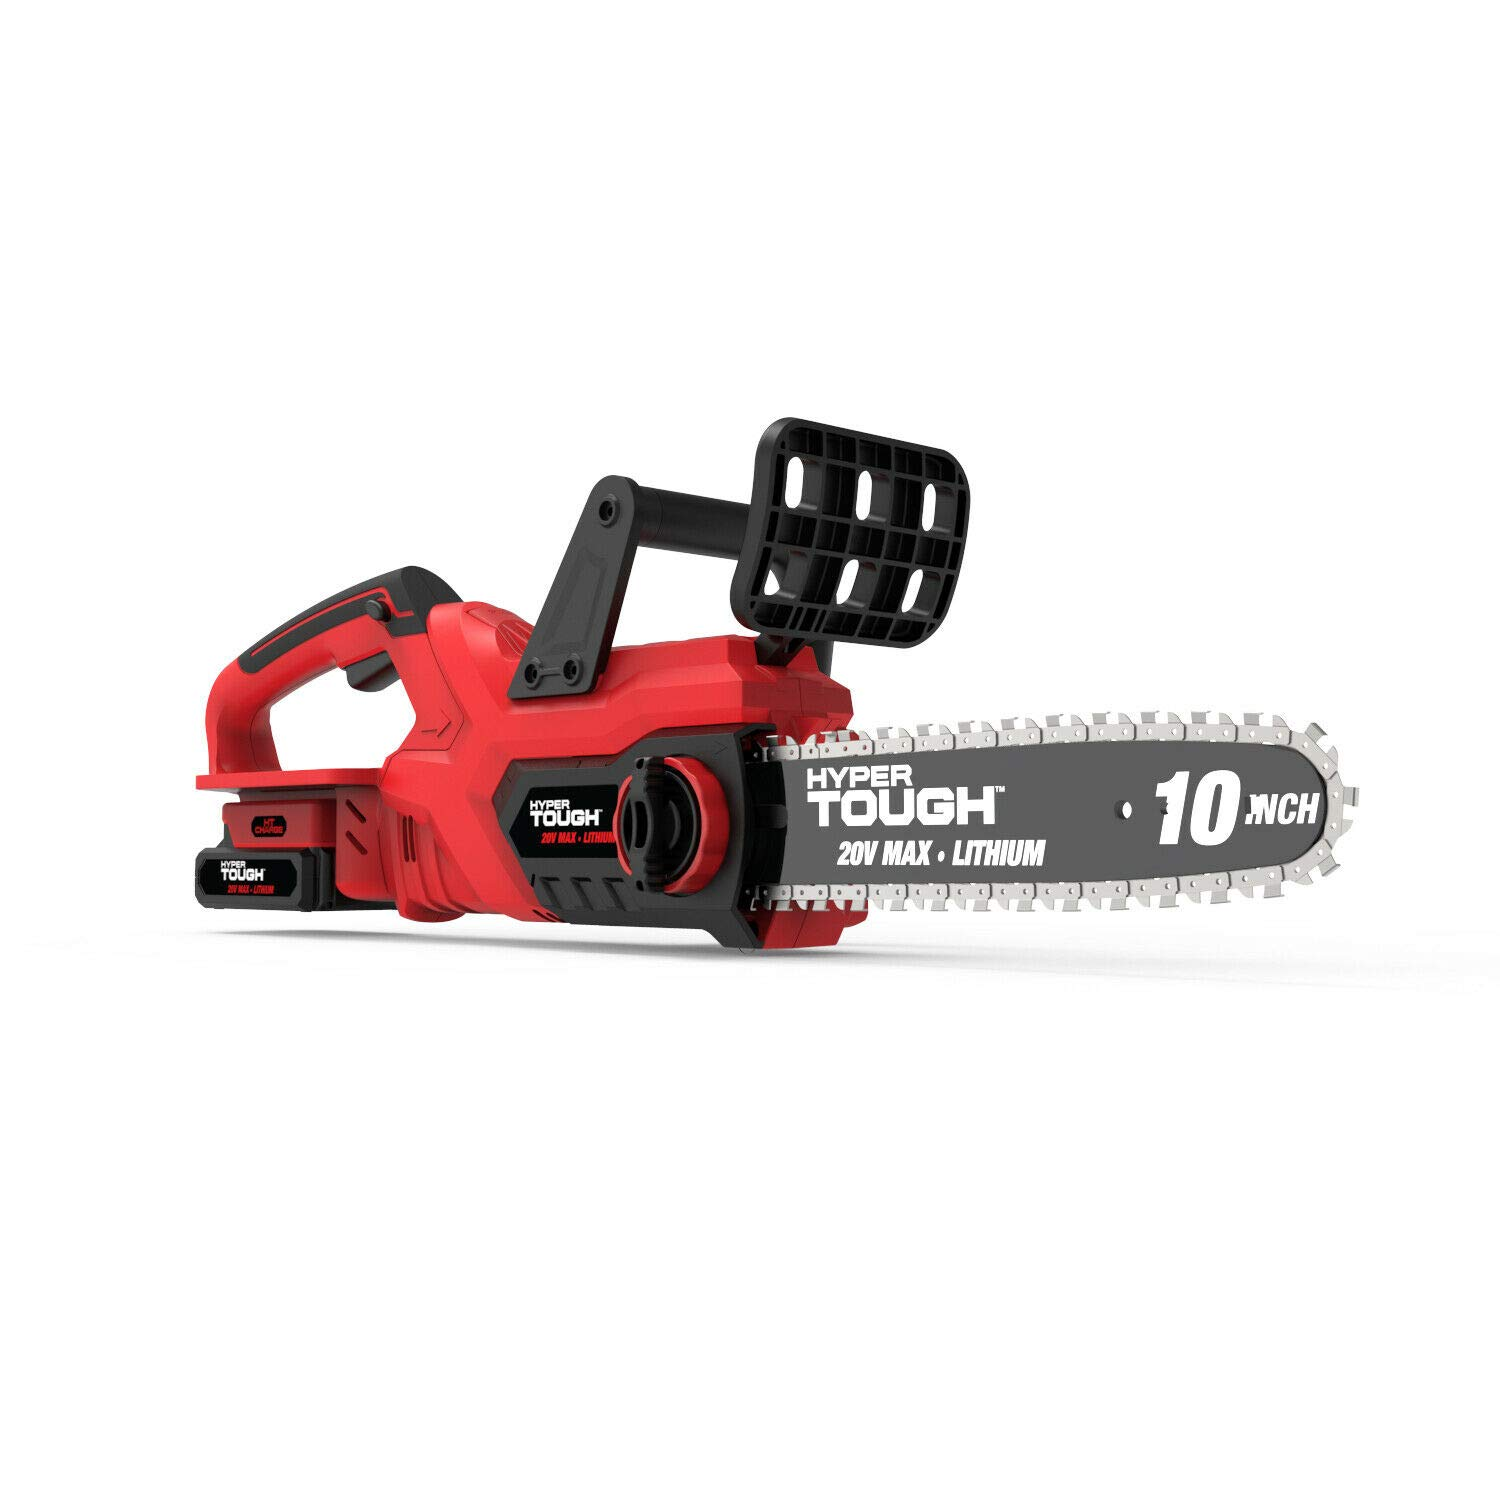 Hyper-Tough 20V Max Cordless 10-Inch Self-Lubricating Chainsaw HT19-401-003-11